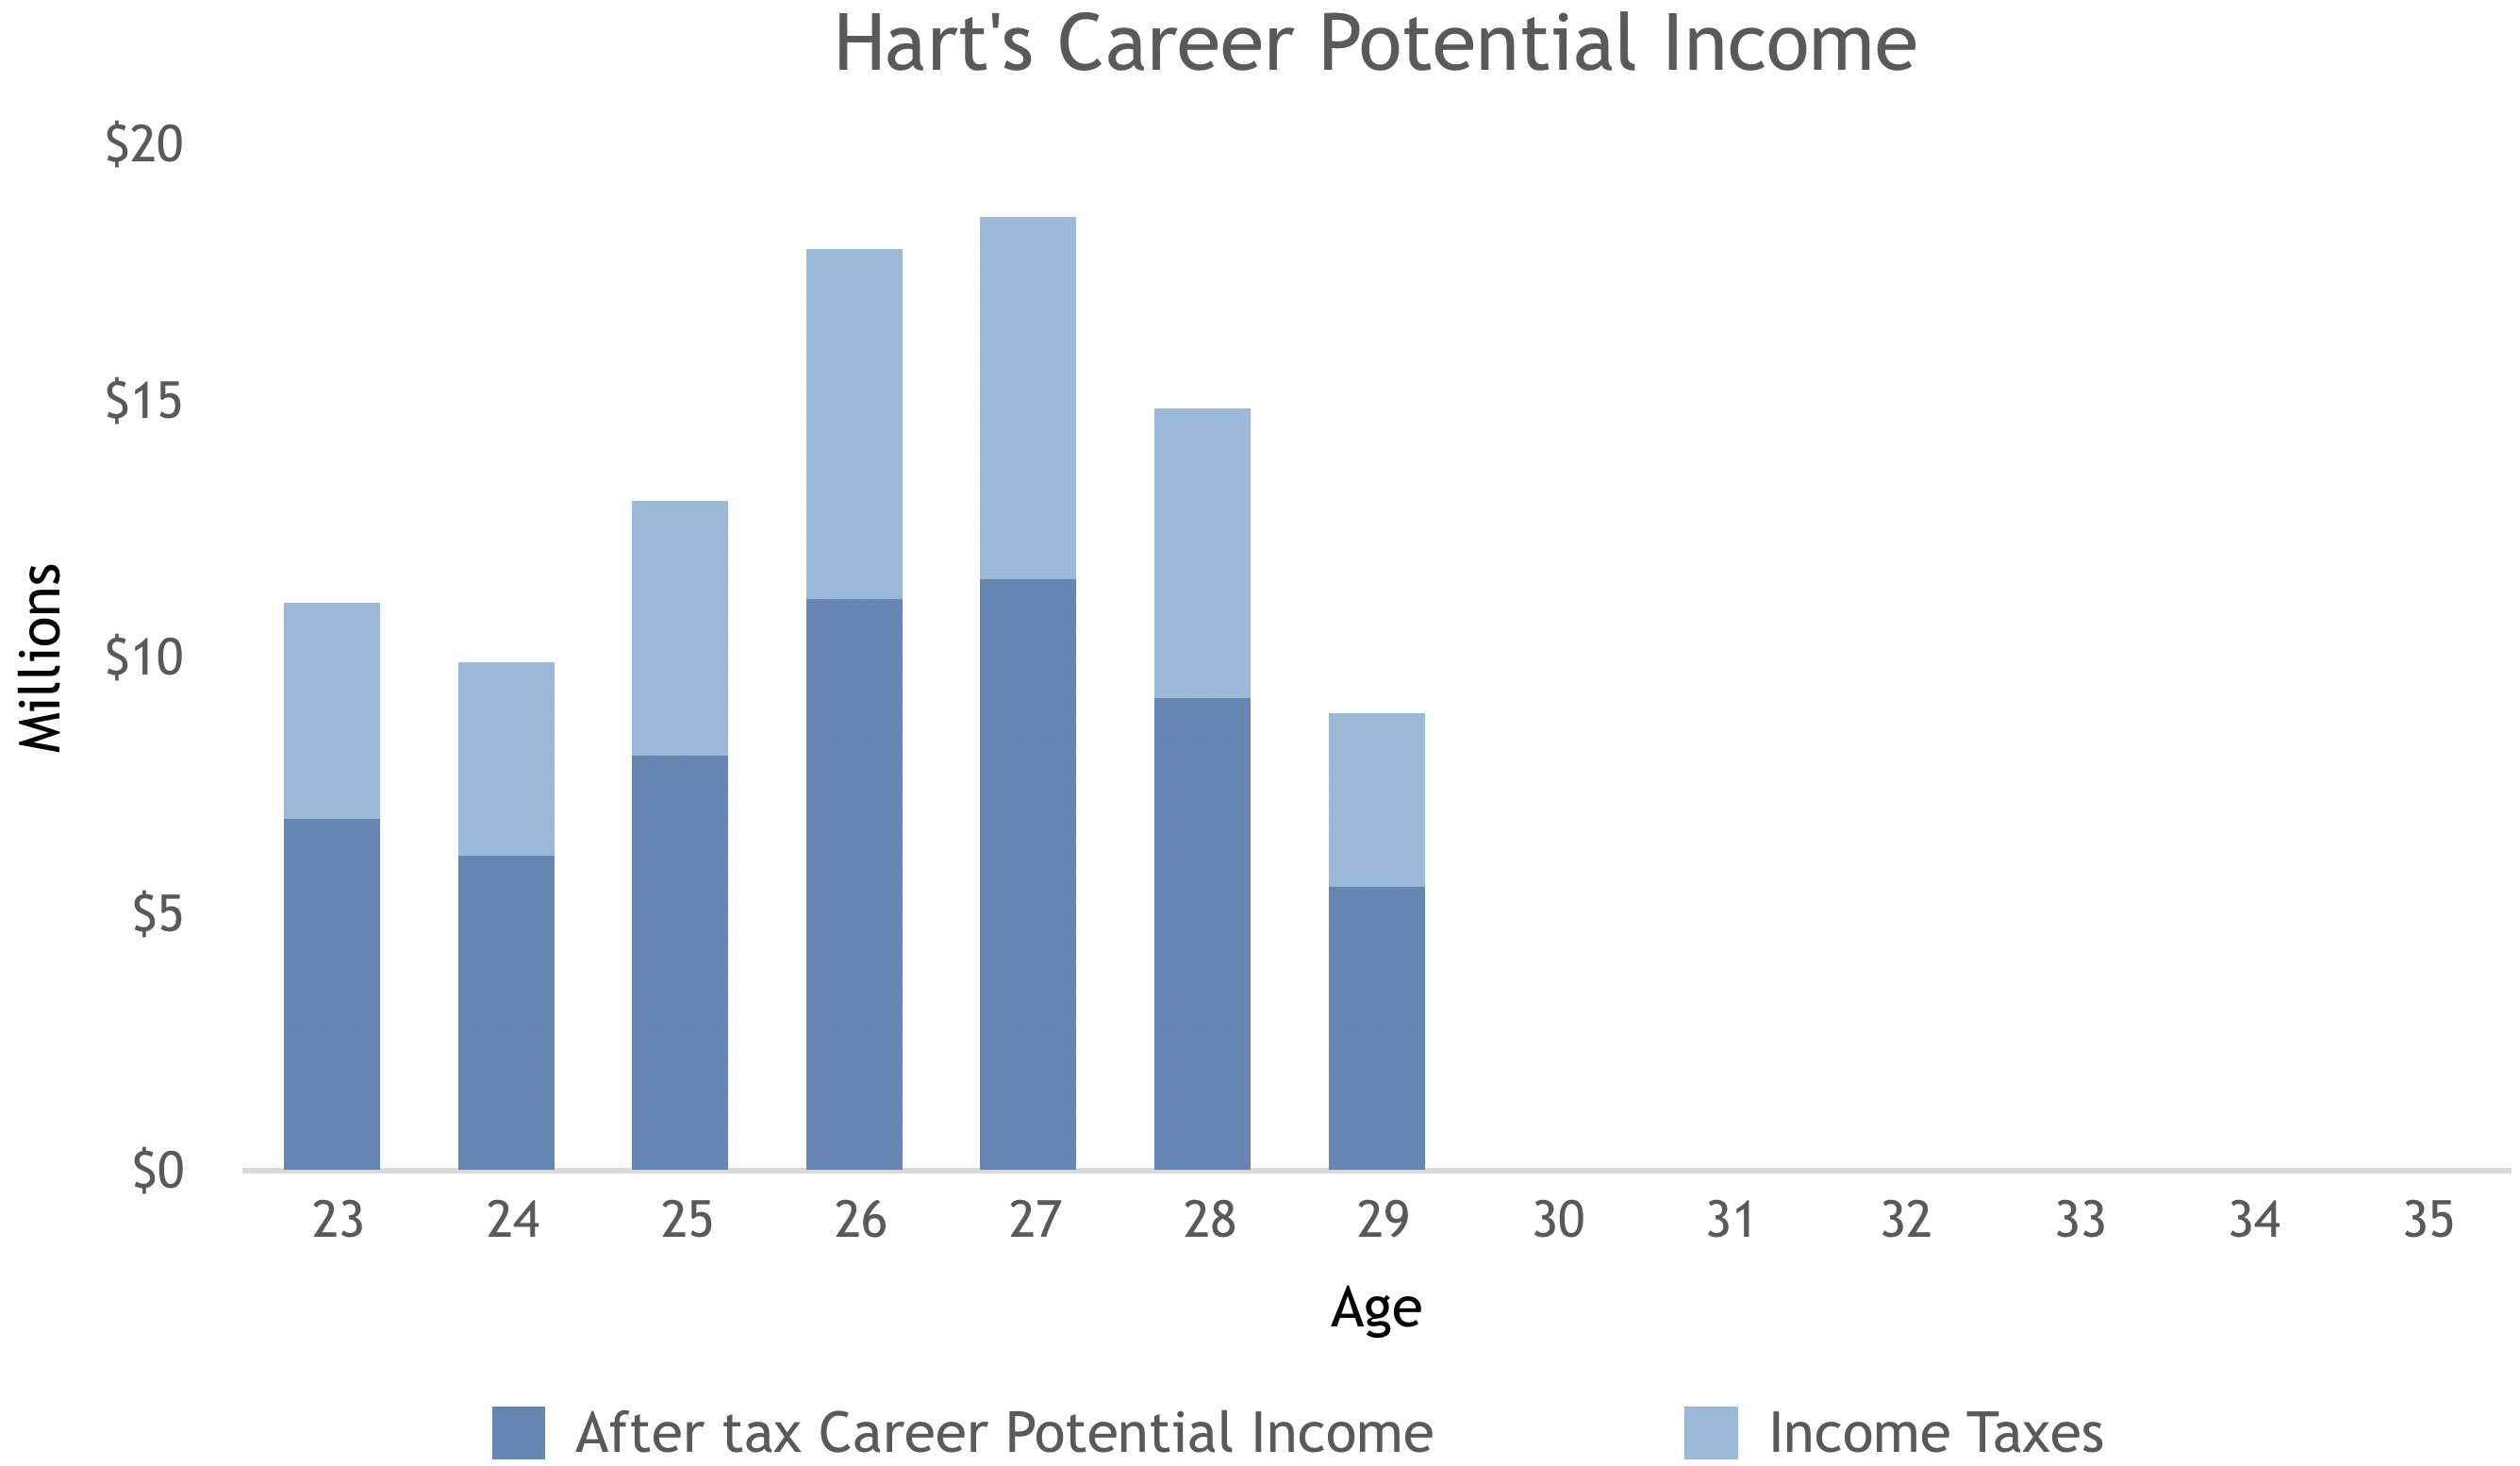 Josh Hart Career Potential Income-1.png